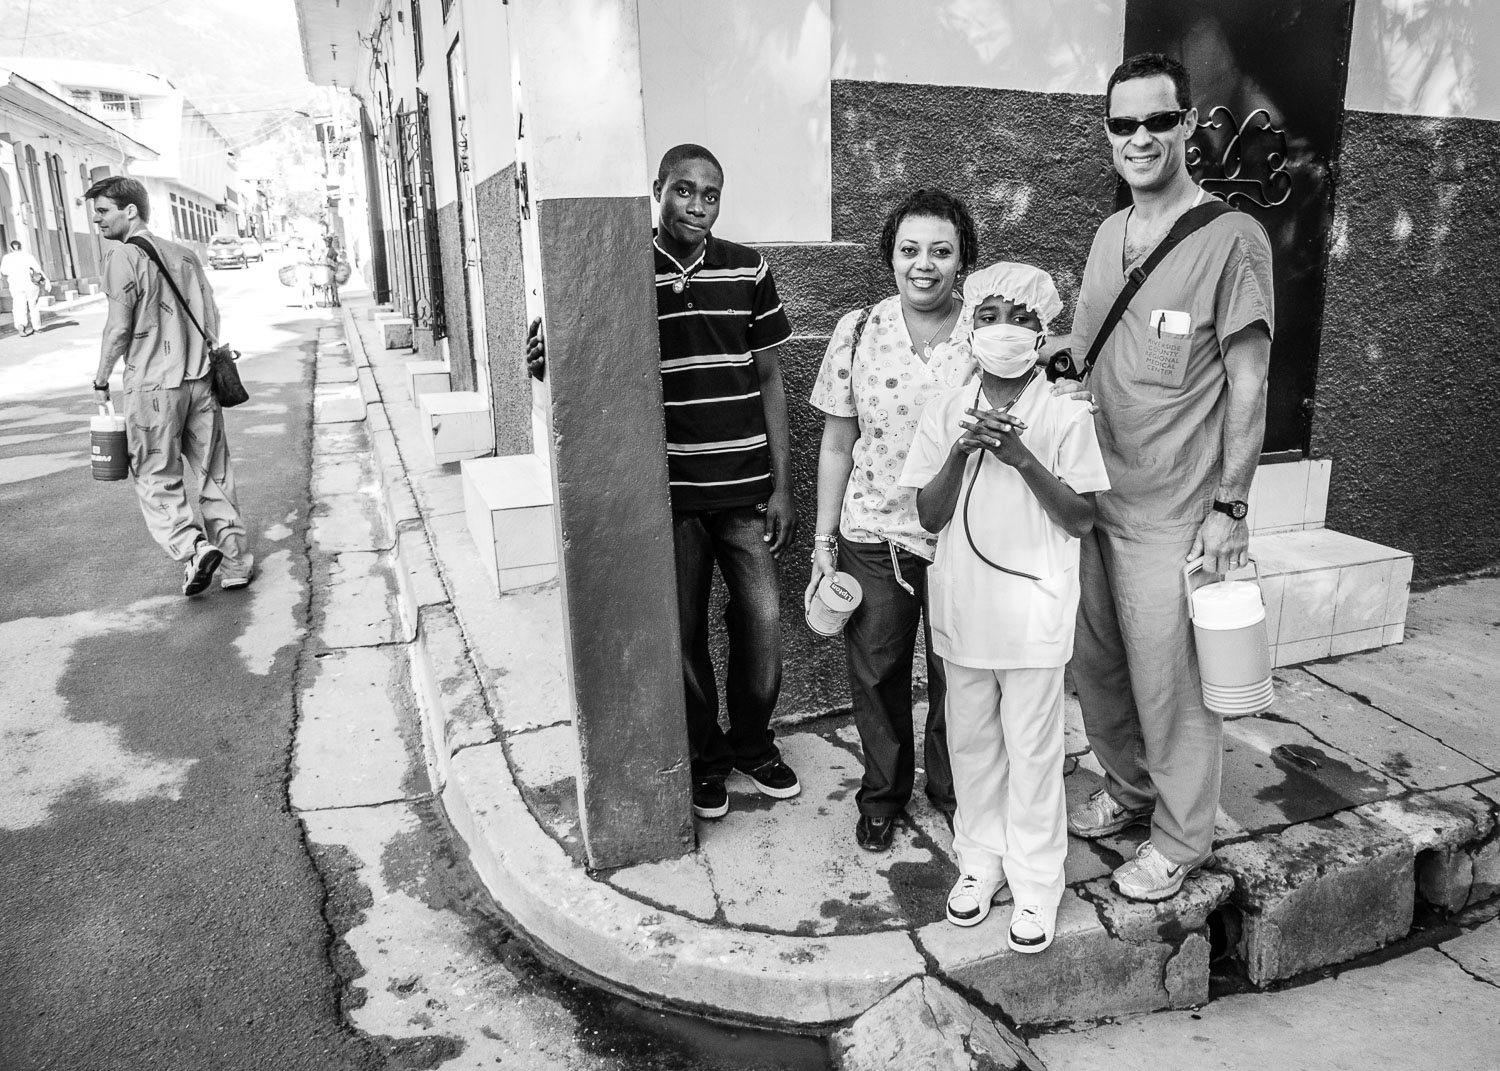 After quickly stowing our personal belongings, we set off on foot through the streets of Cap Haitien to the hospital a couple of miles away from our hotel.